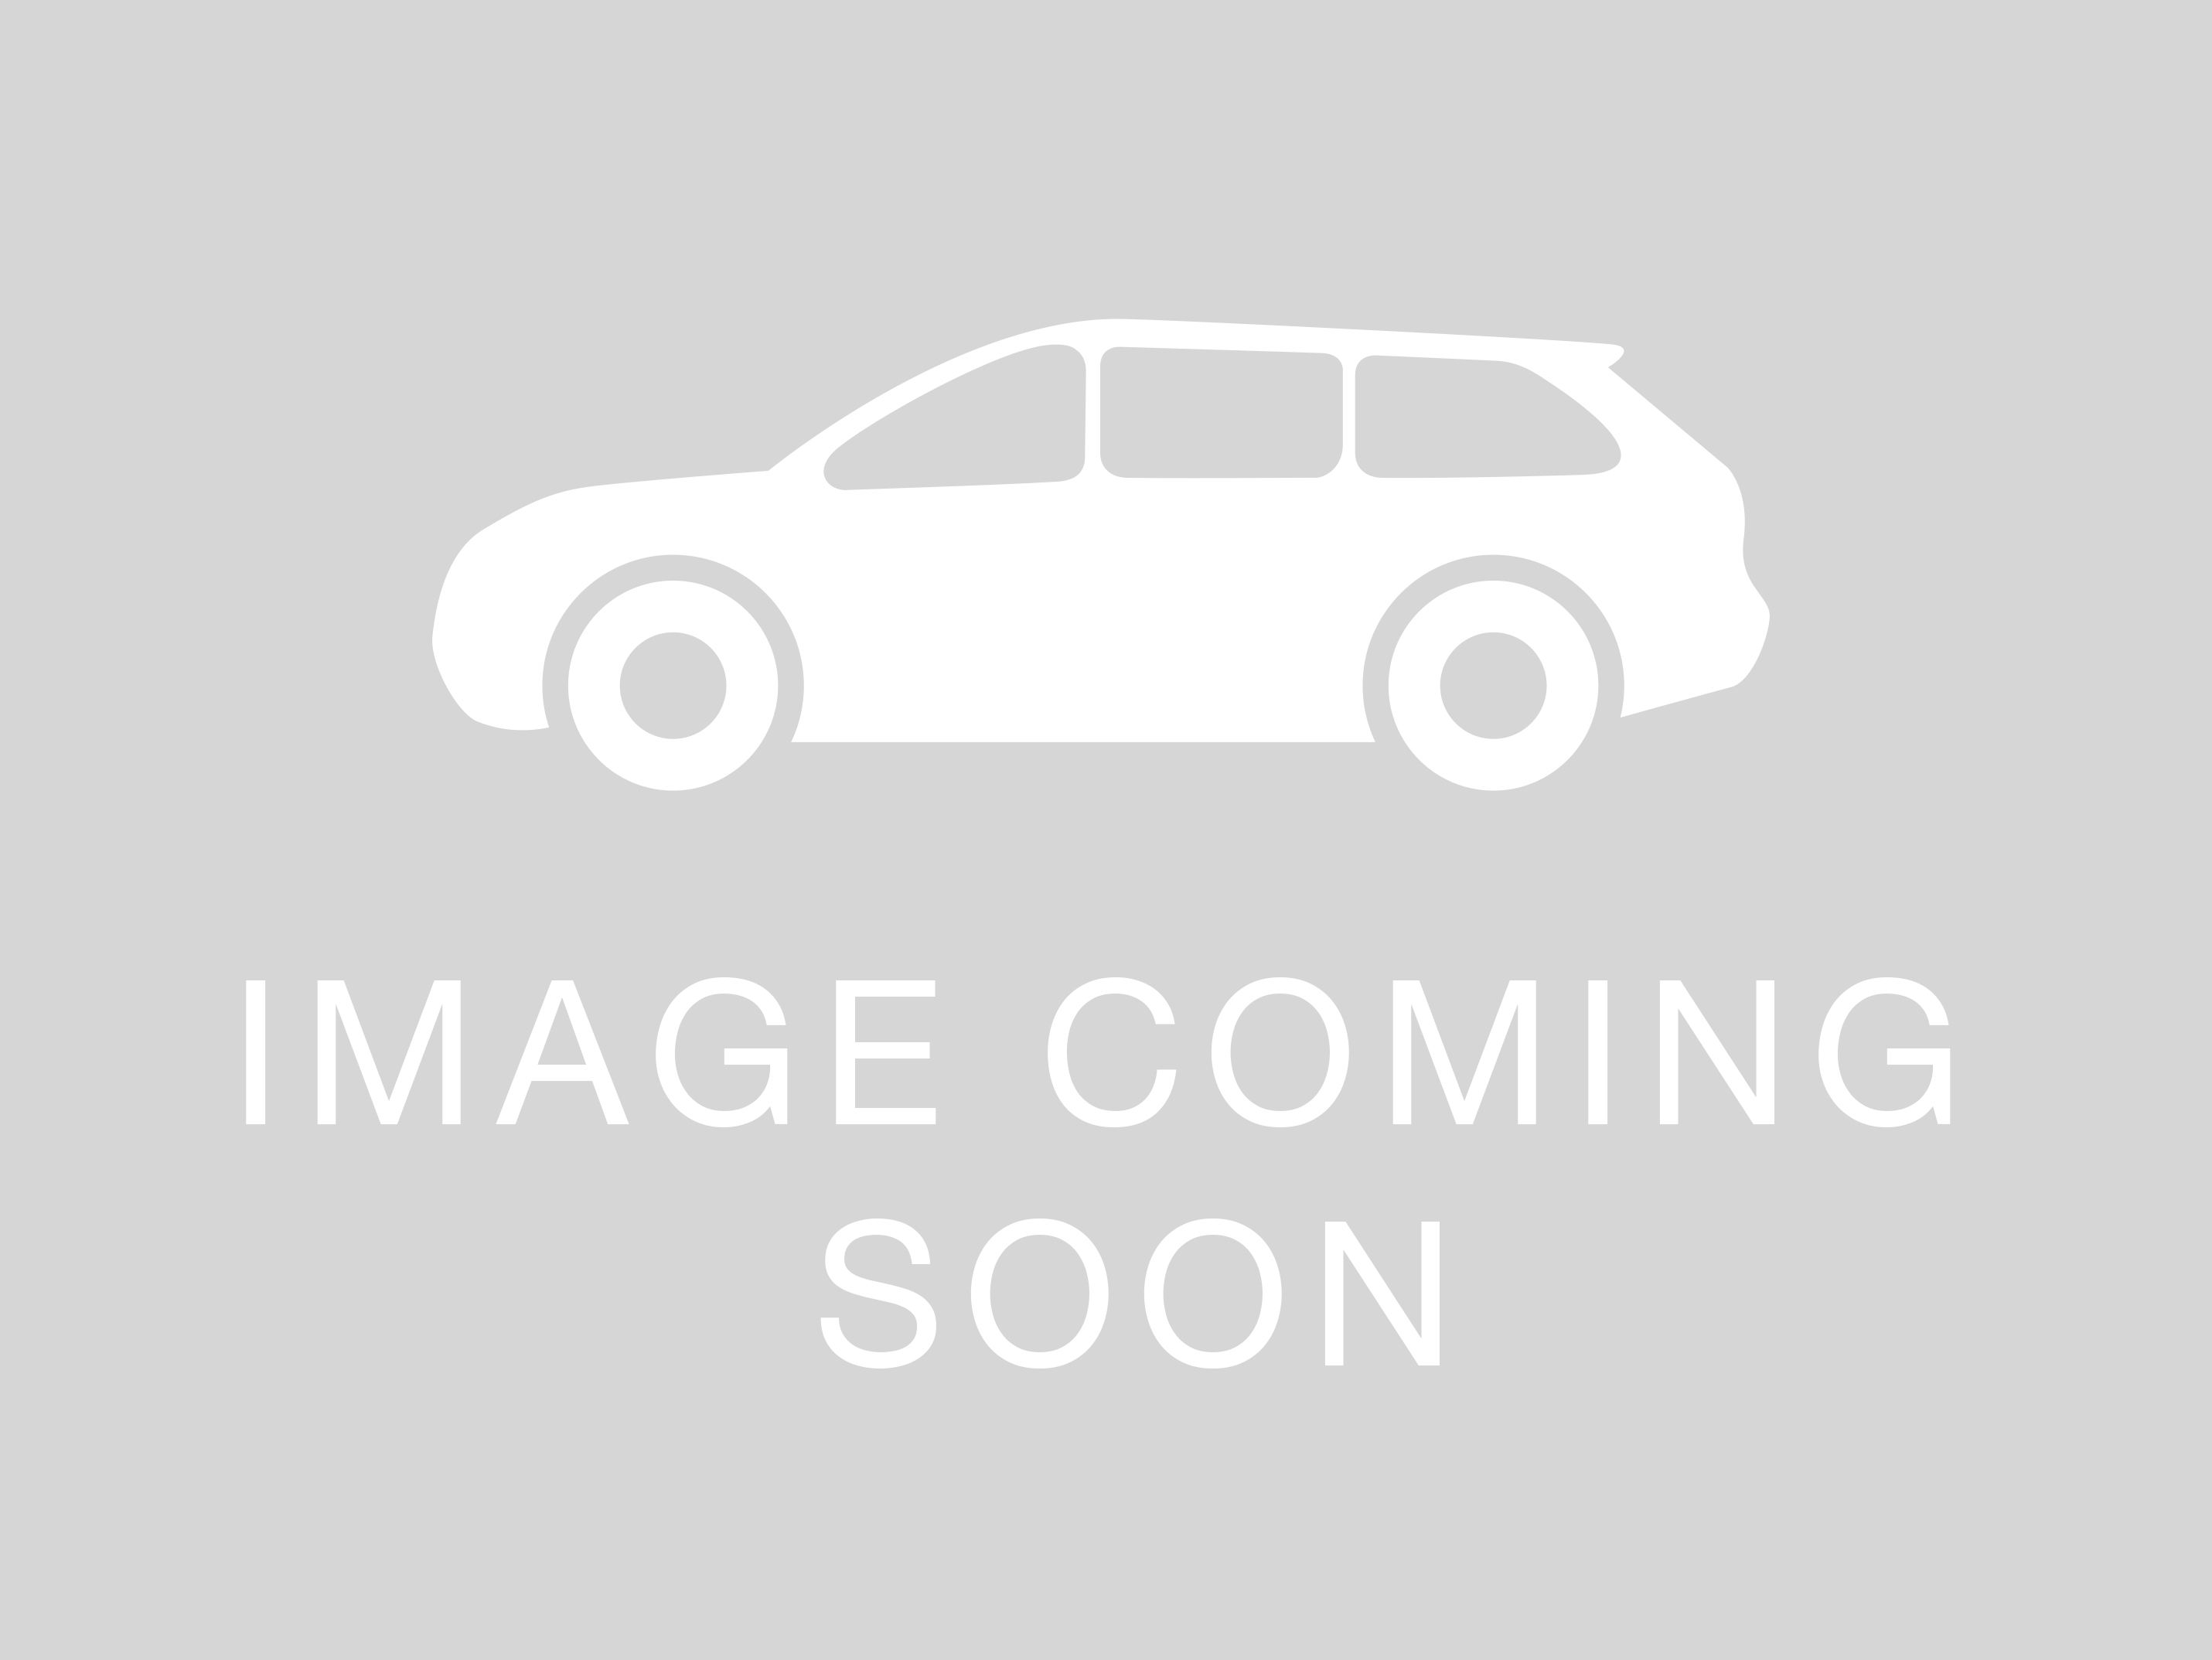 2018 suzuki swift glx 1 2 cvt sz116363 winger group nz rh winger co nz